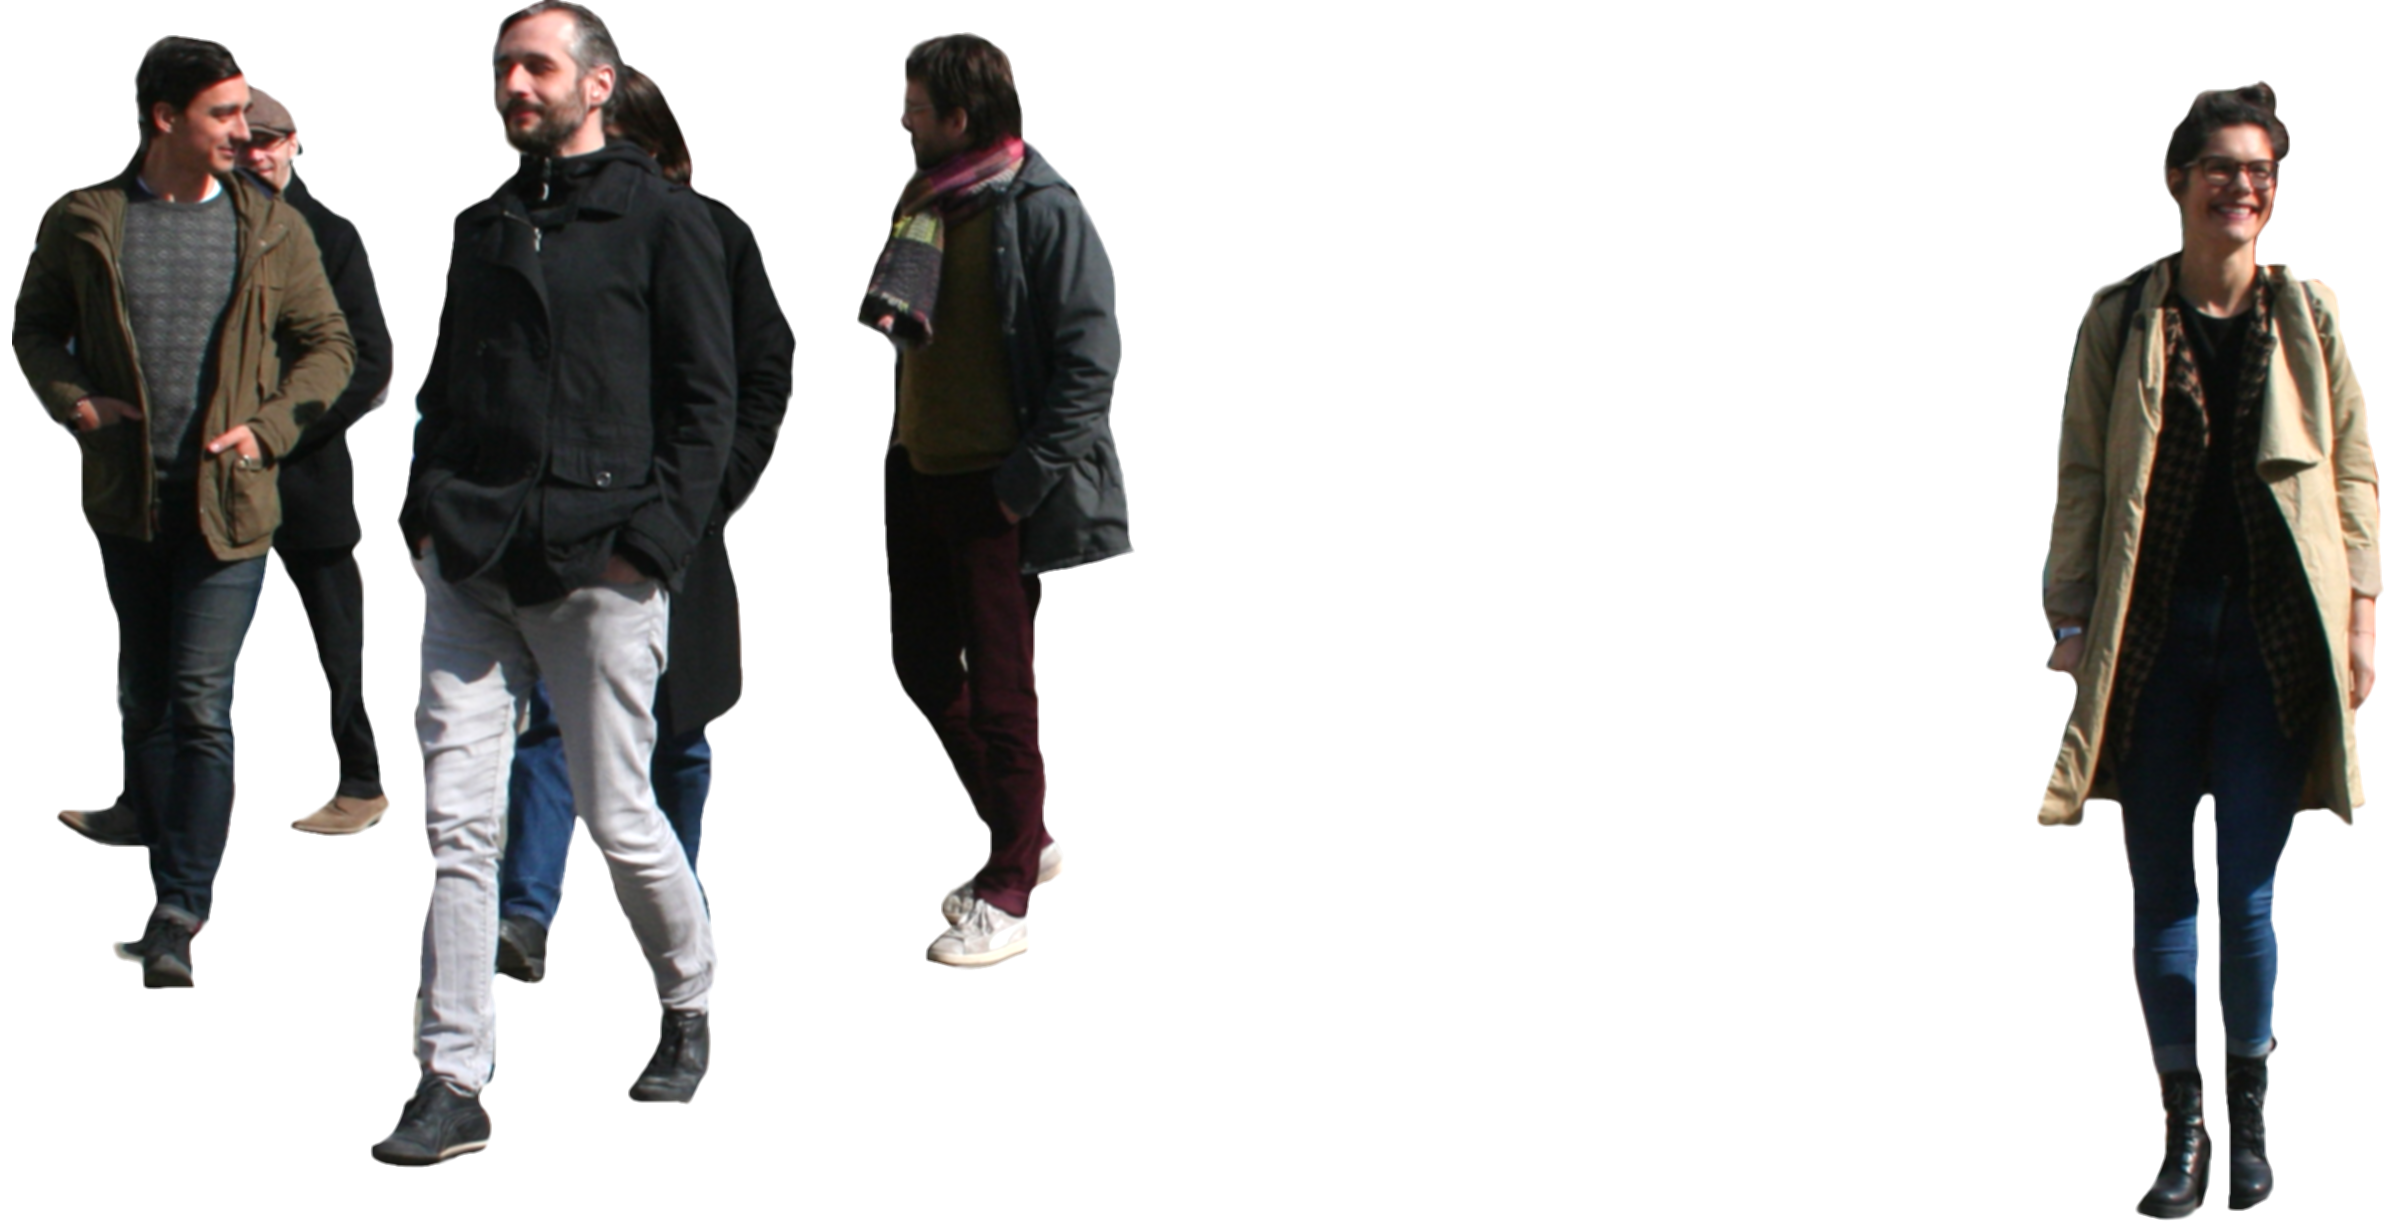 png of people